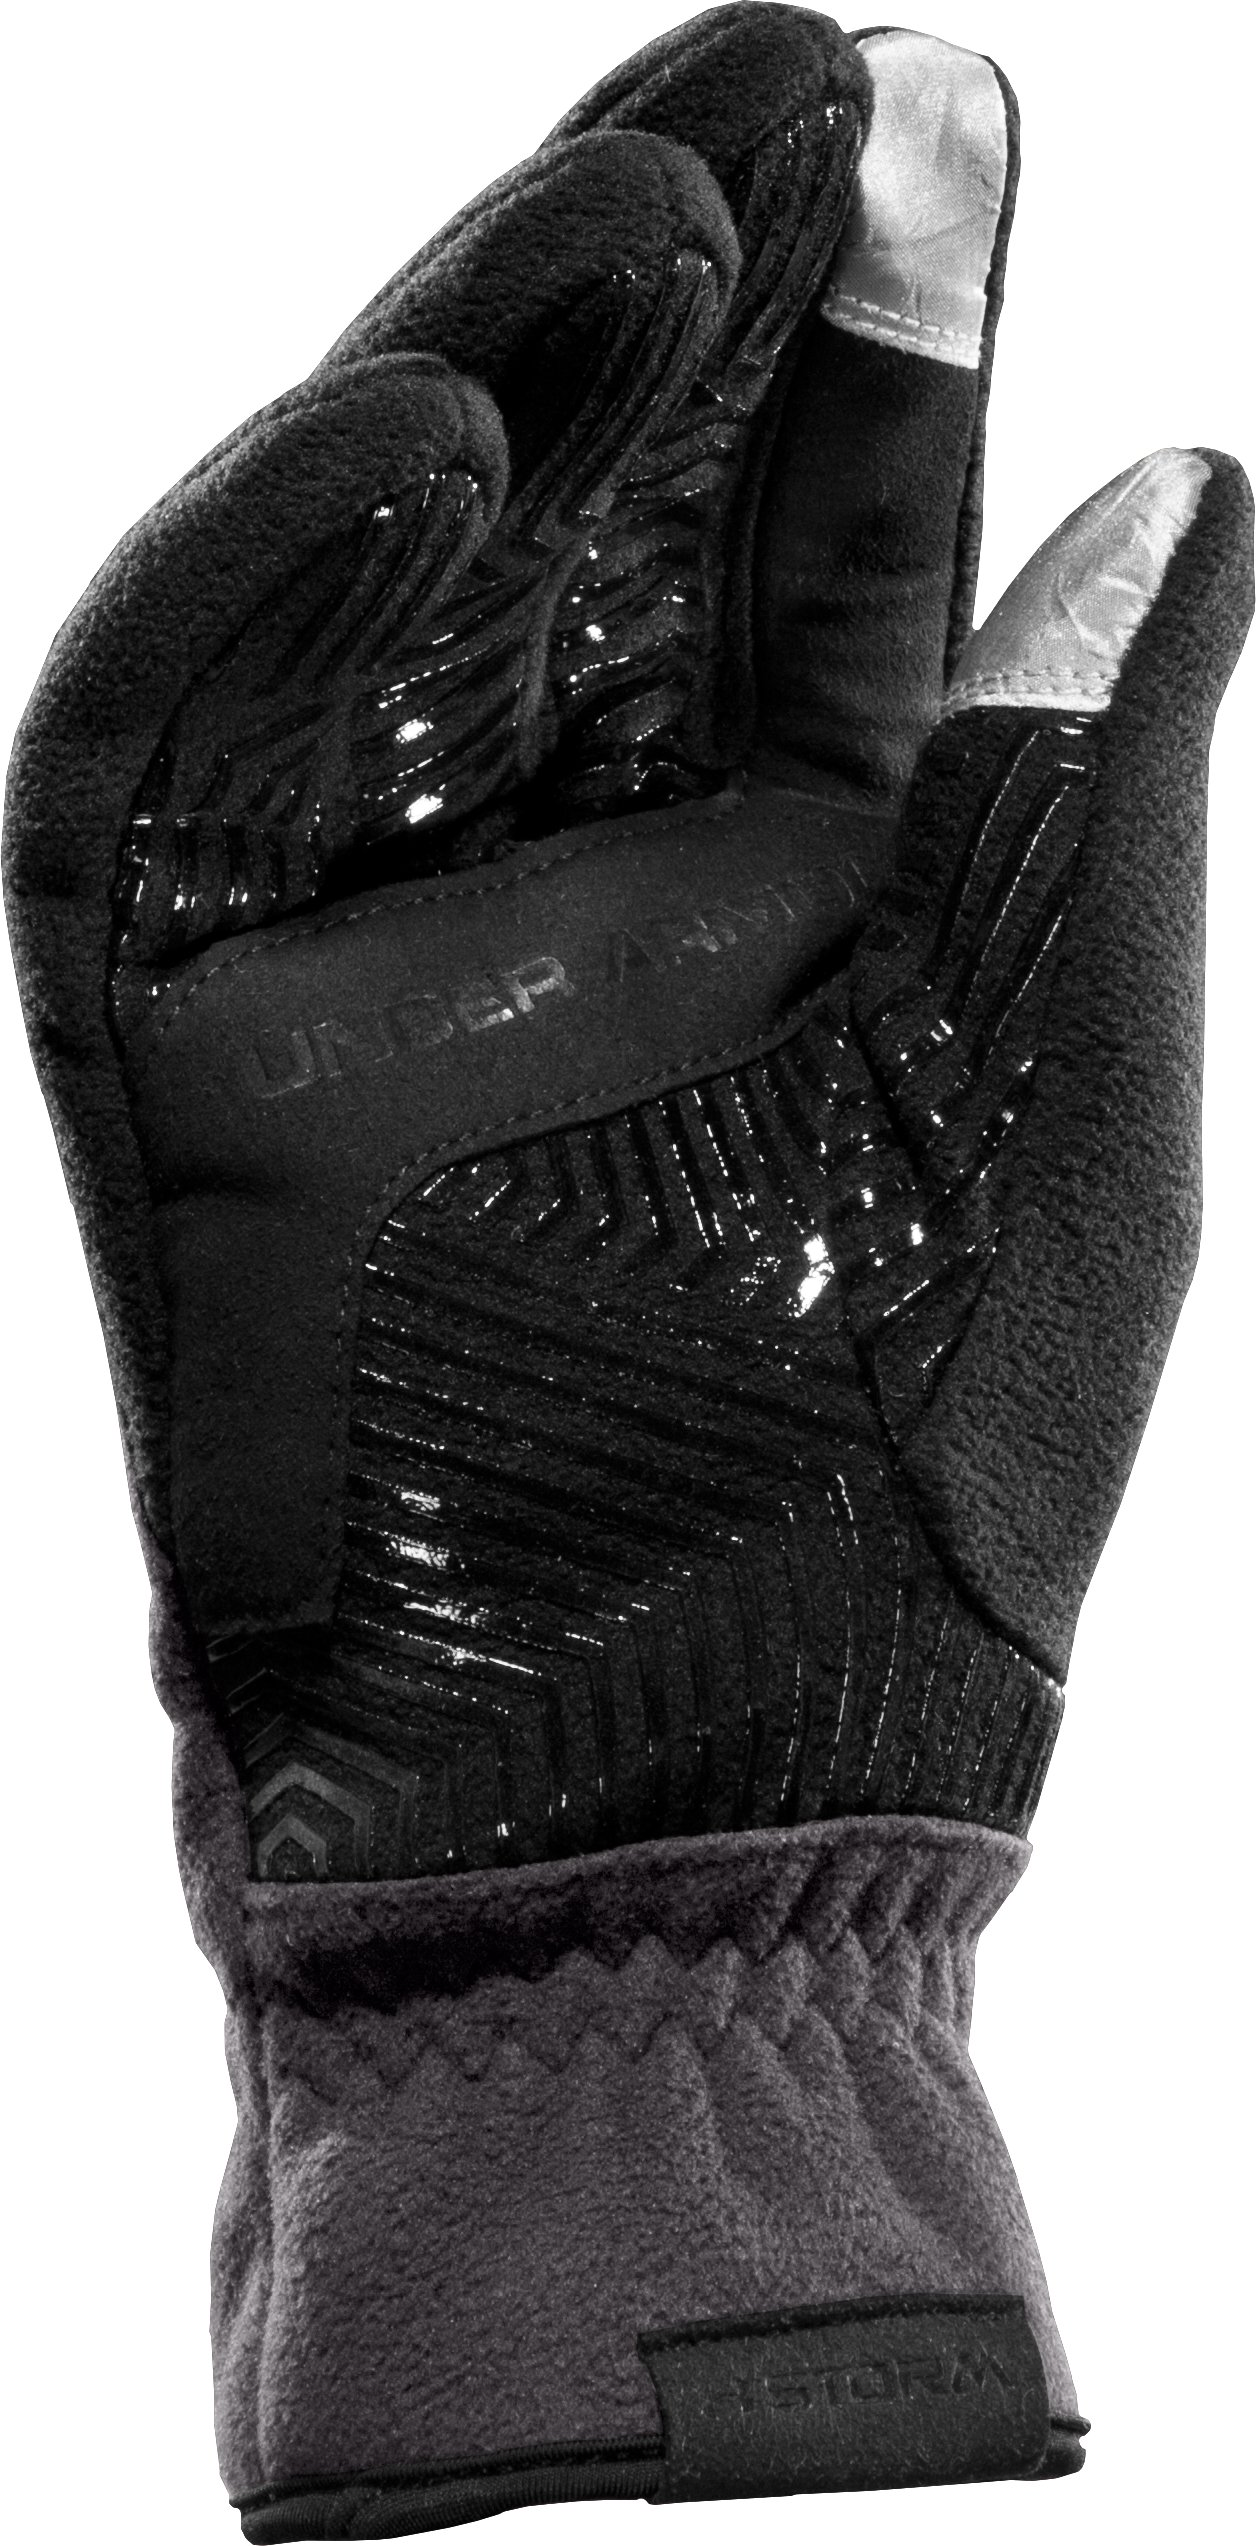 Men's ColdGear® Infrared Storm Convex Gloves, Charcoal